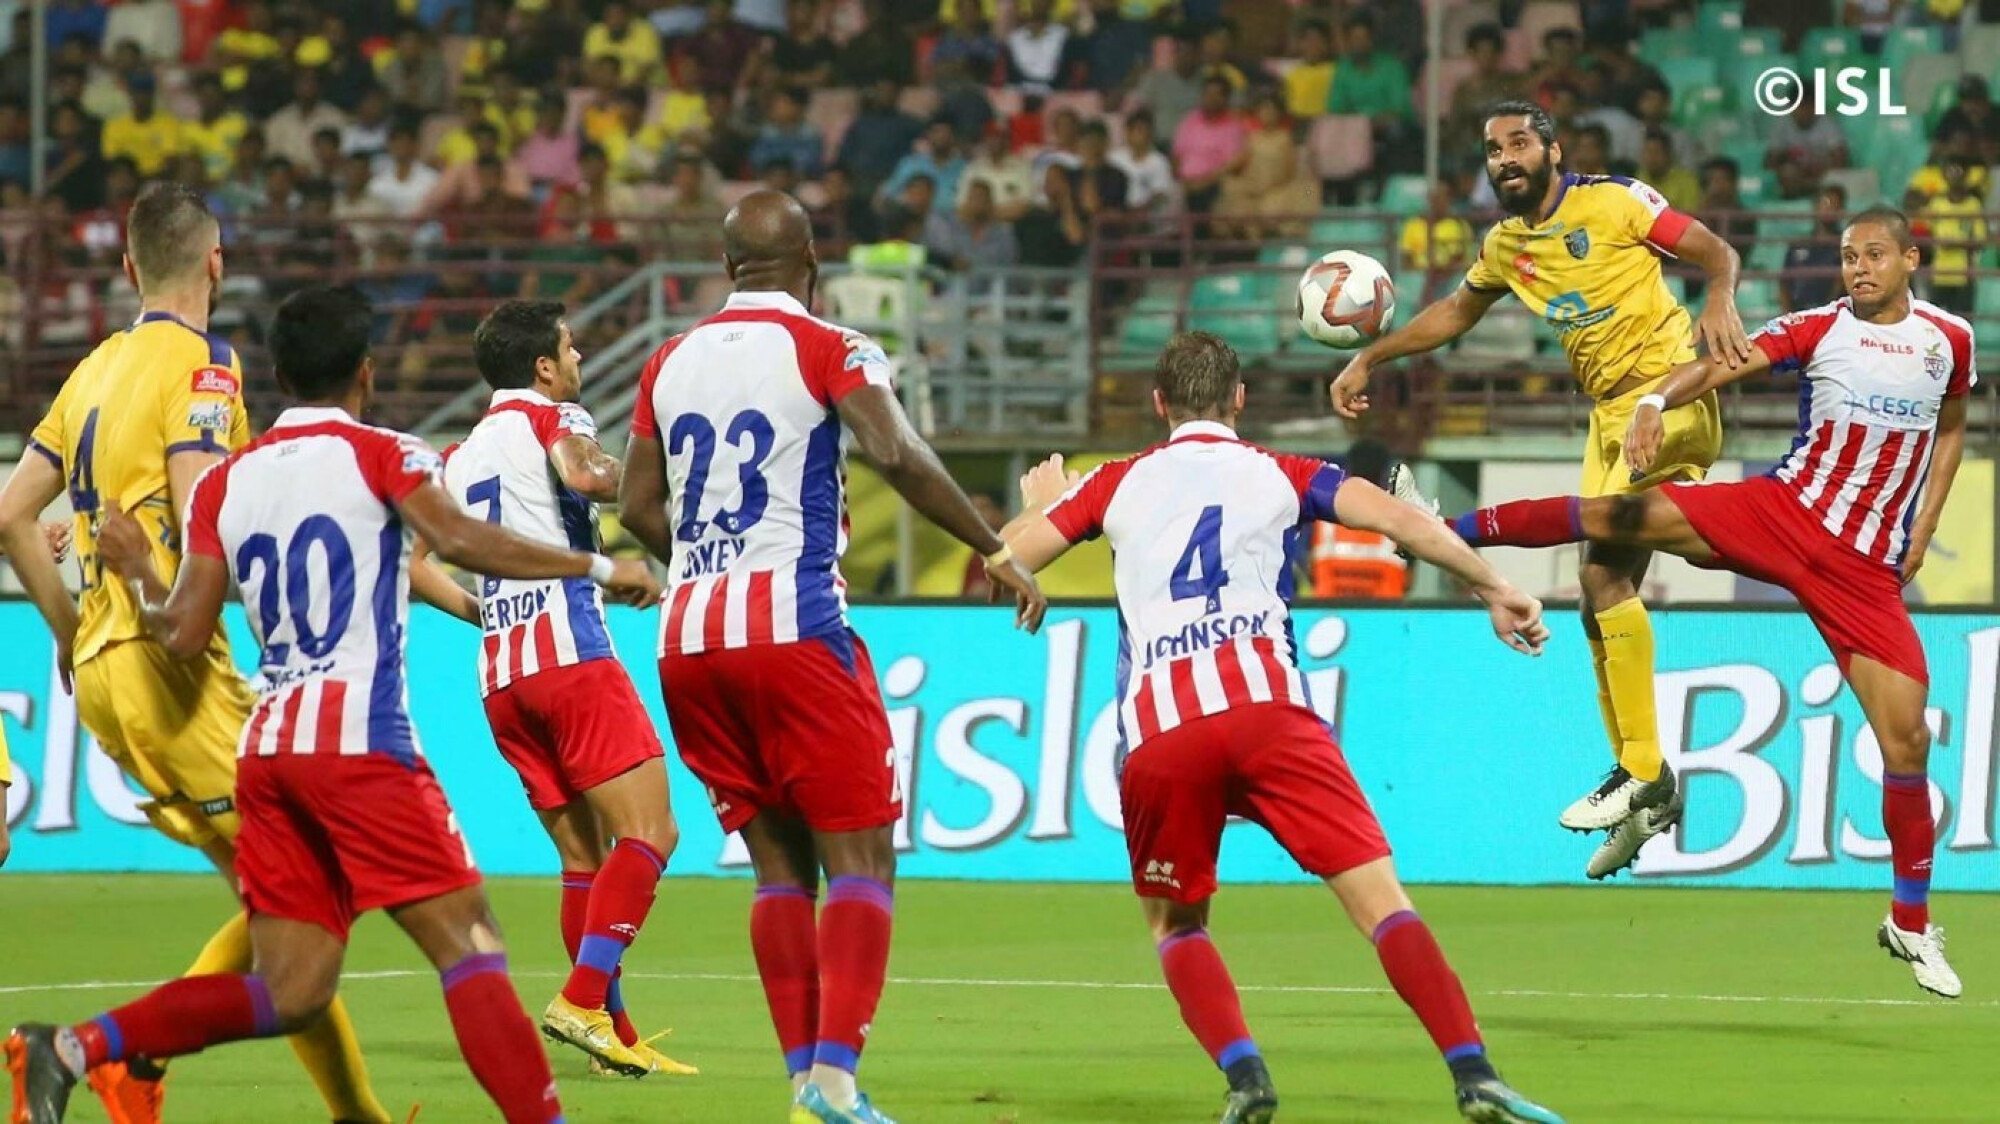 ISL 2018-19: Wasteful Blasters scrape a draw against ATK at home